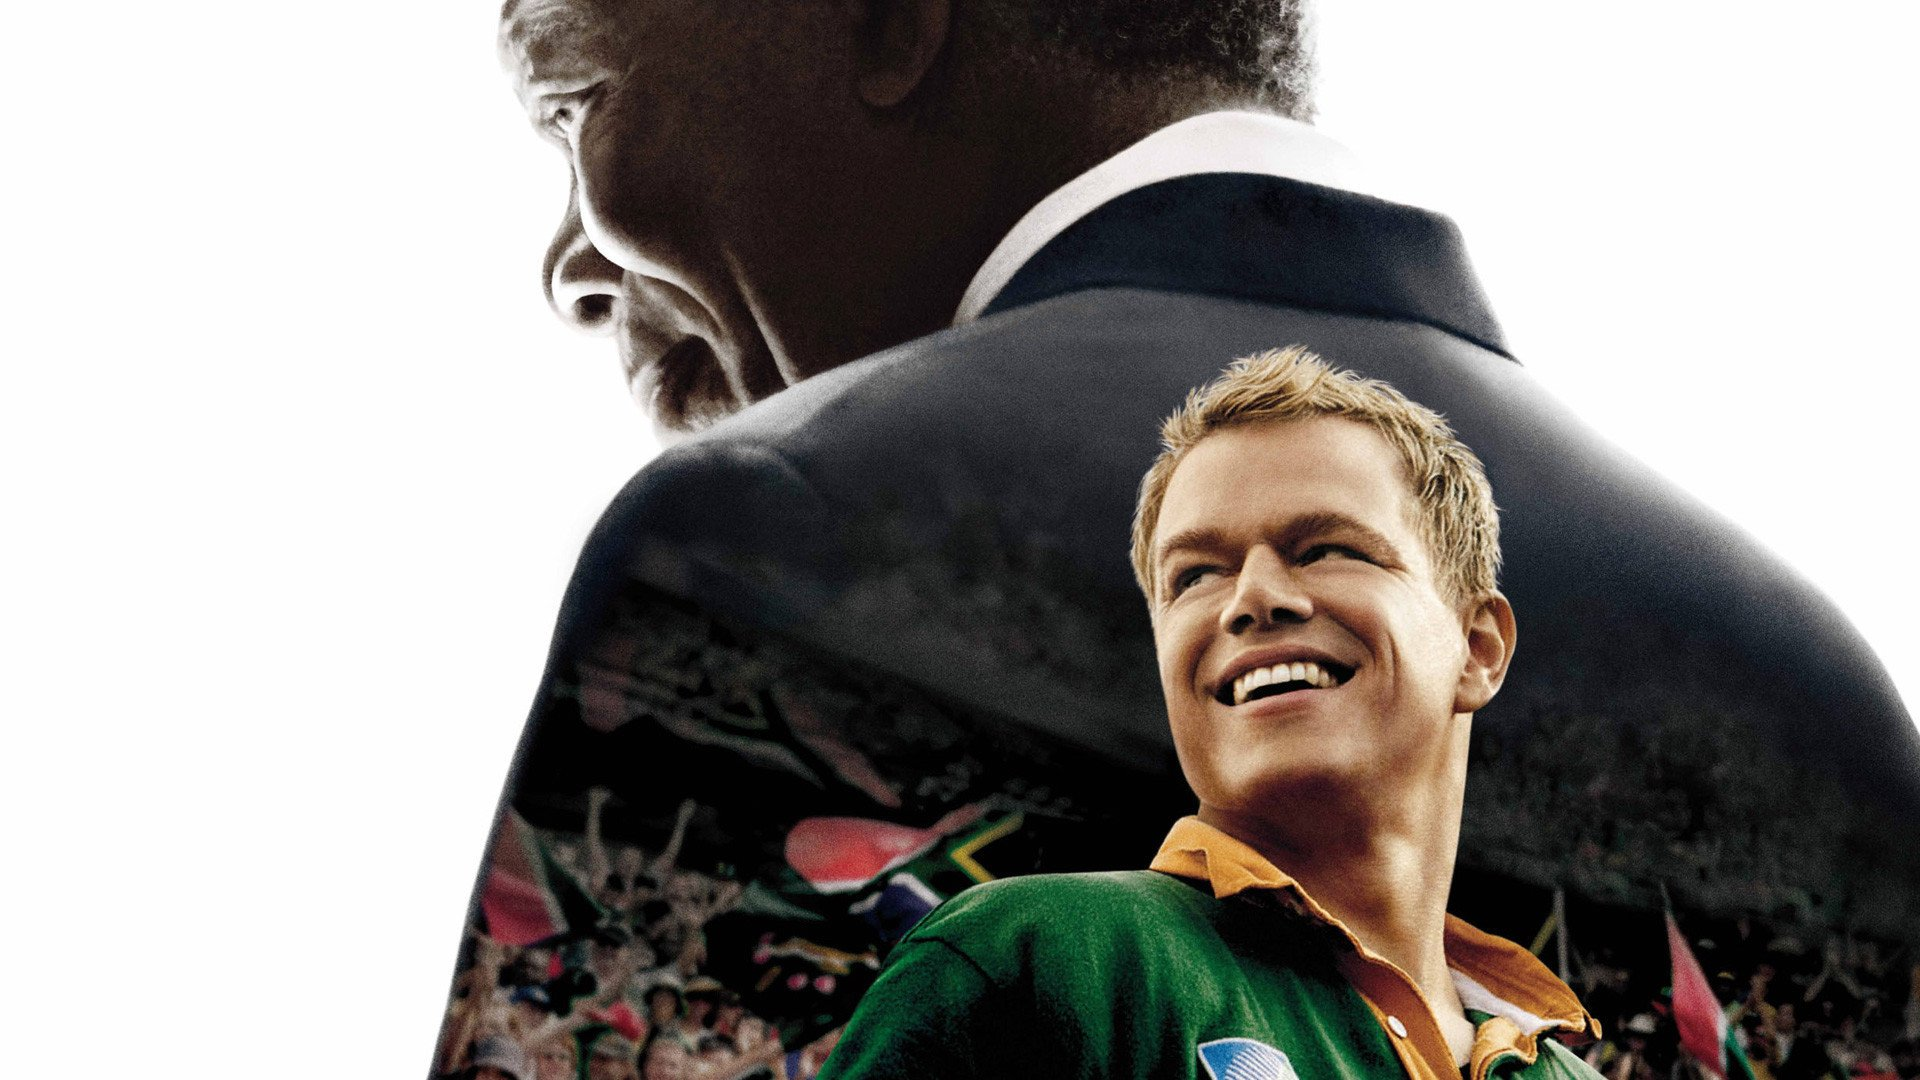 Download the movie invictus